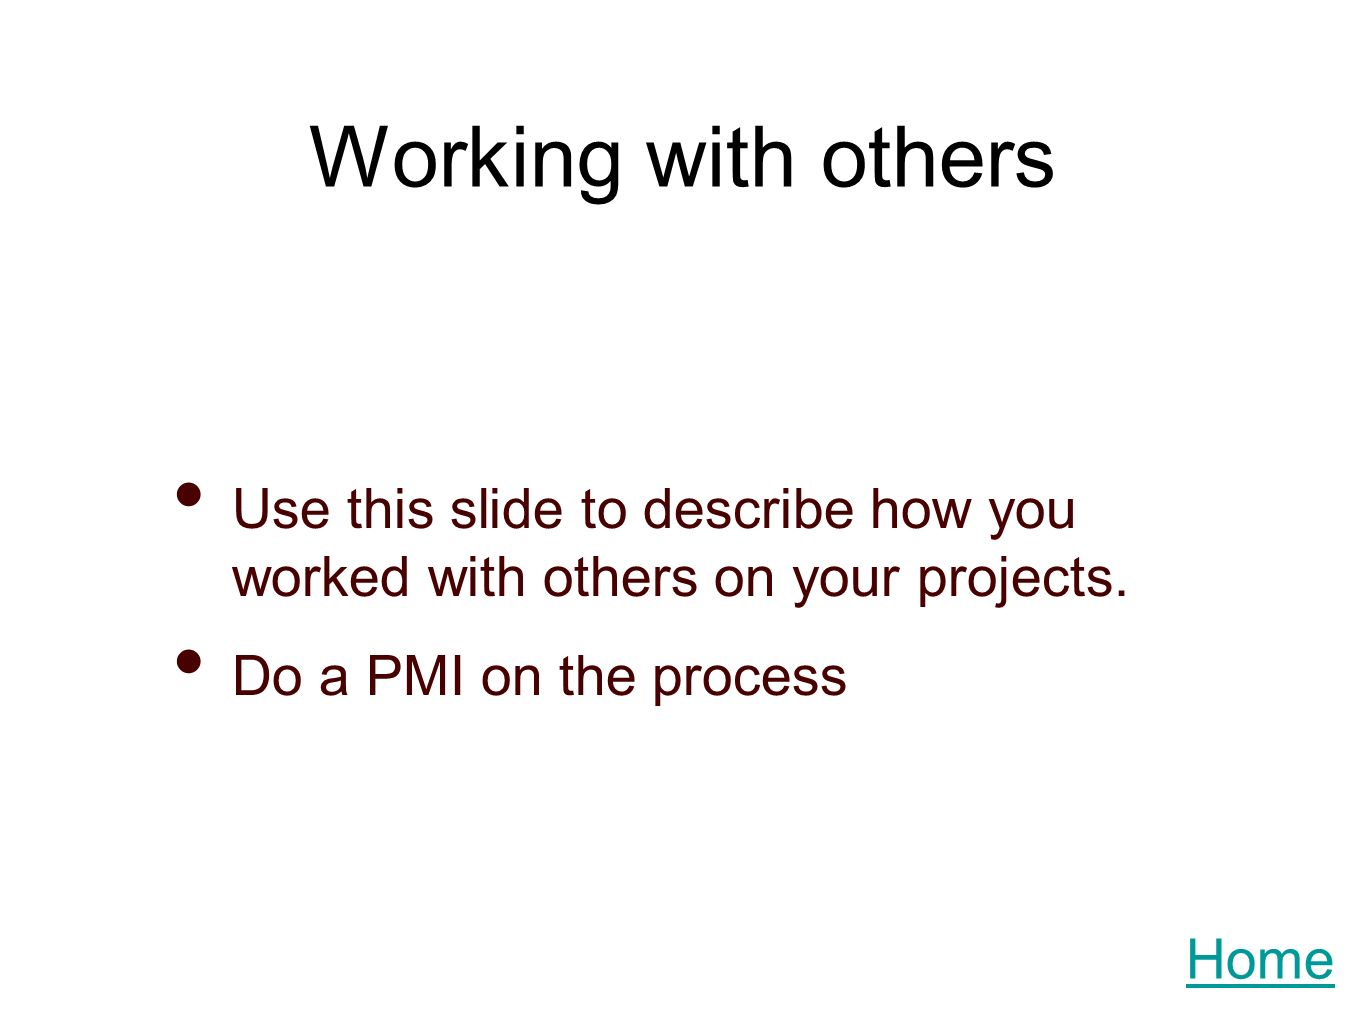 Working with others Use this slide to describe how you worked with others on your projects.